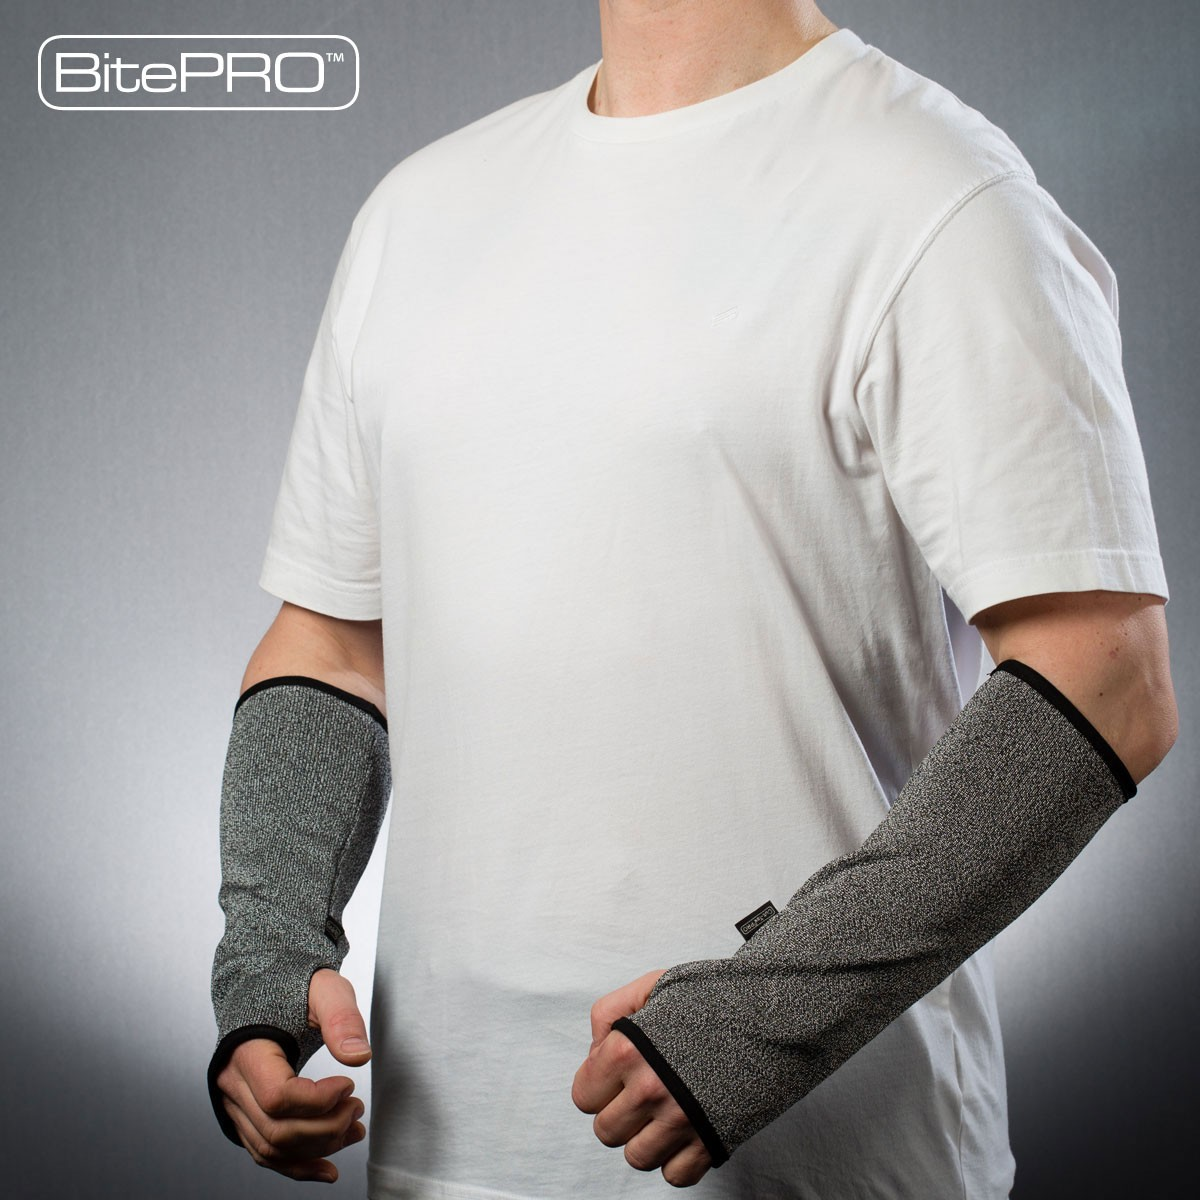 Bite Pro arm guards version 3